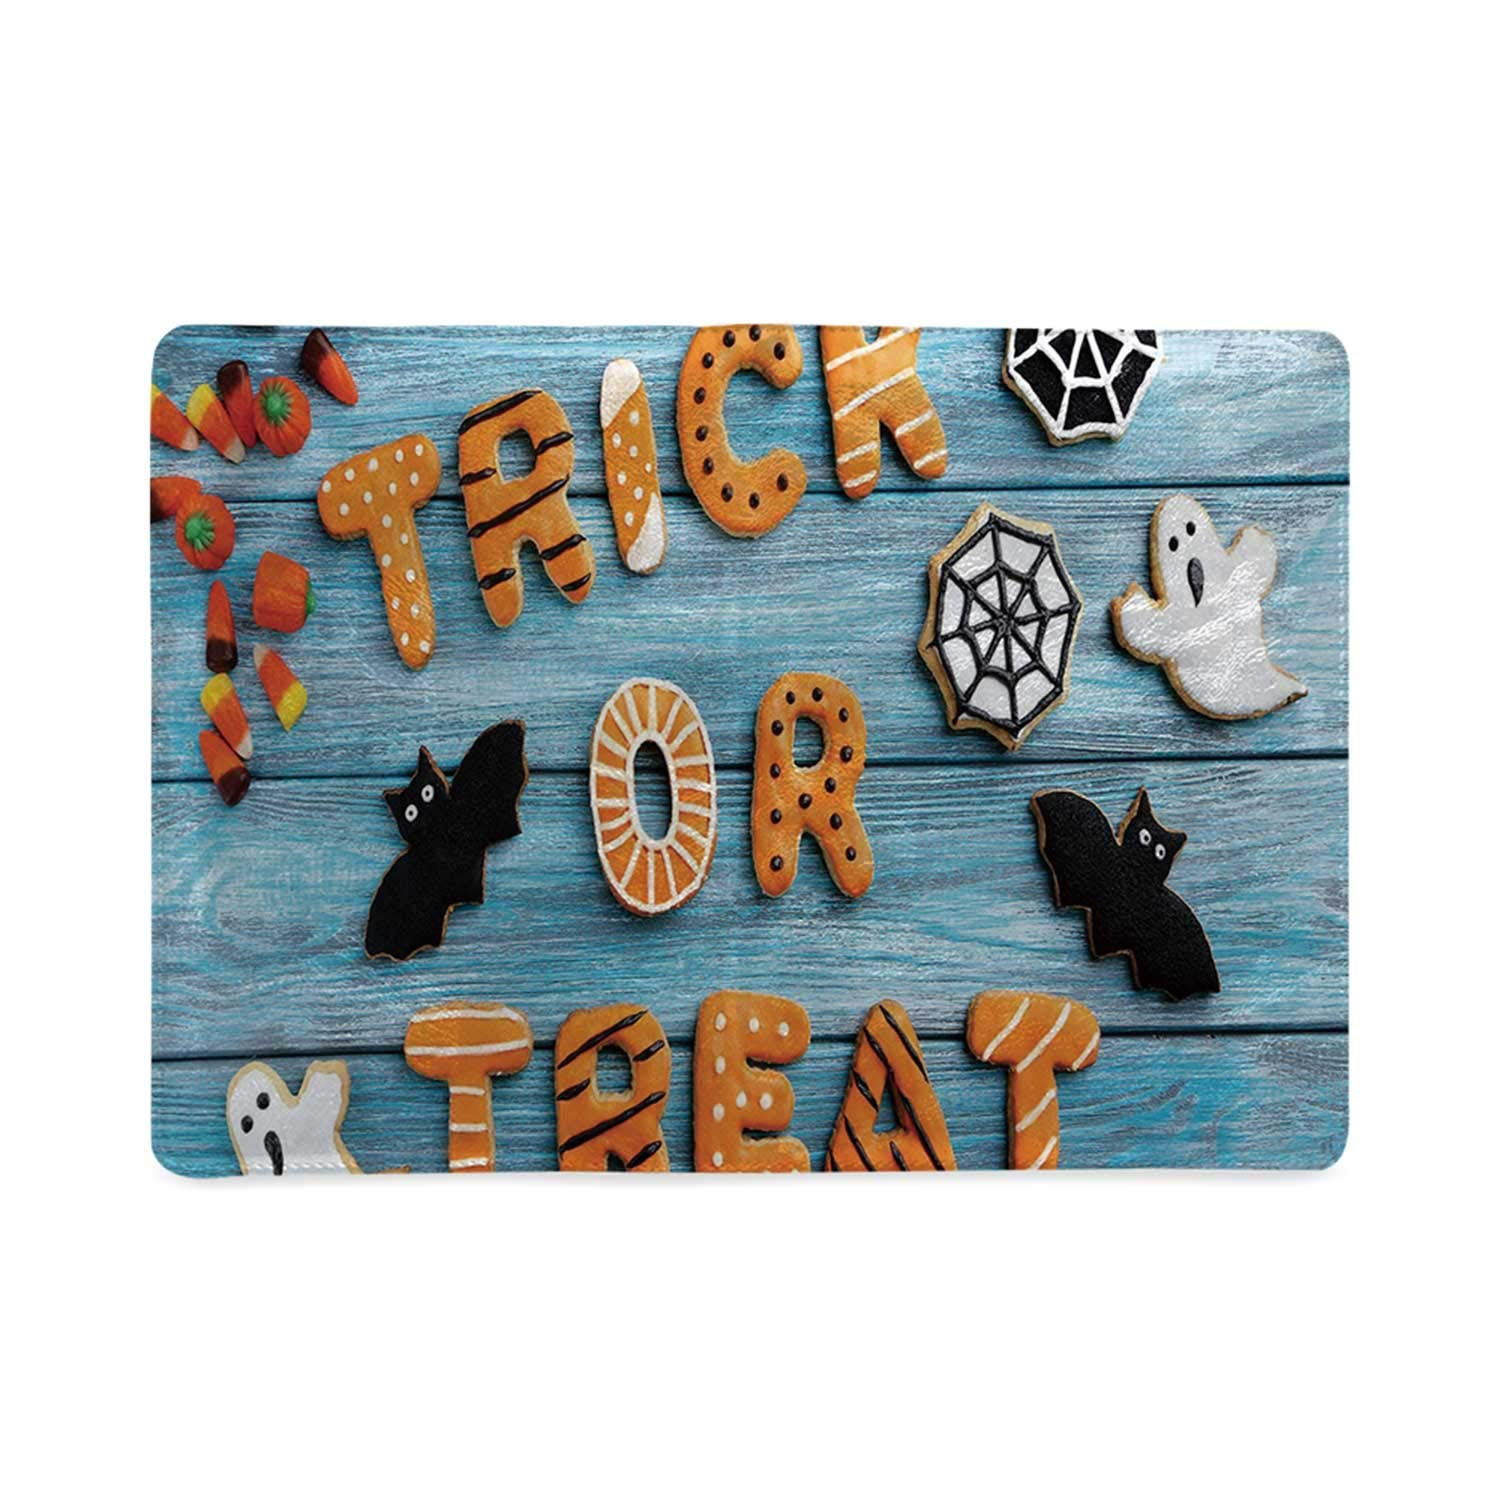 Vintage Halloween Timeless Style Notebook,Trick or Treat Cookie Wooden Table Ghost Bat Web Halloween Anniversary Celebration by YOLIYANA